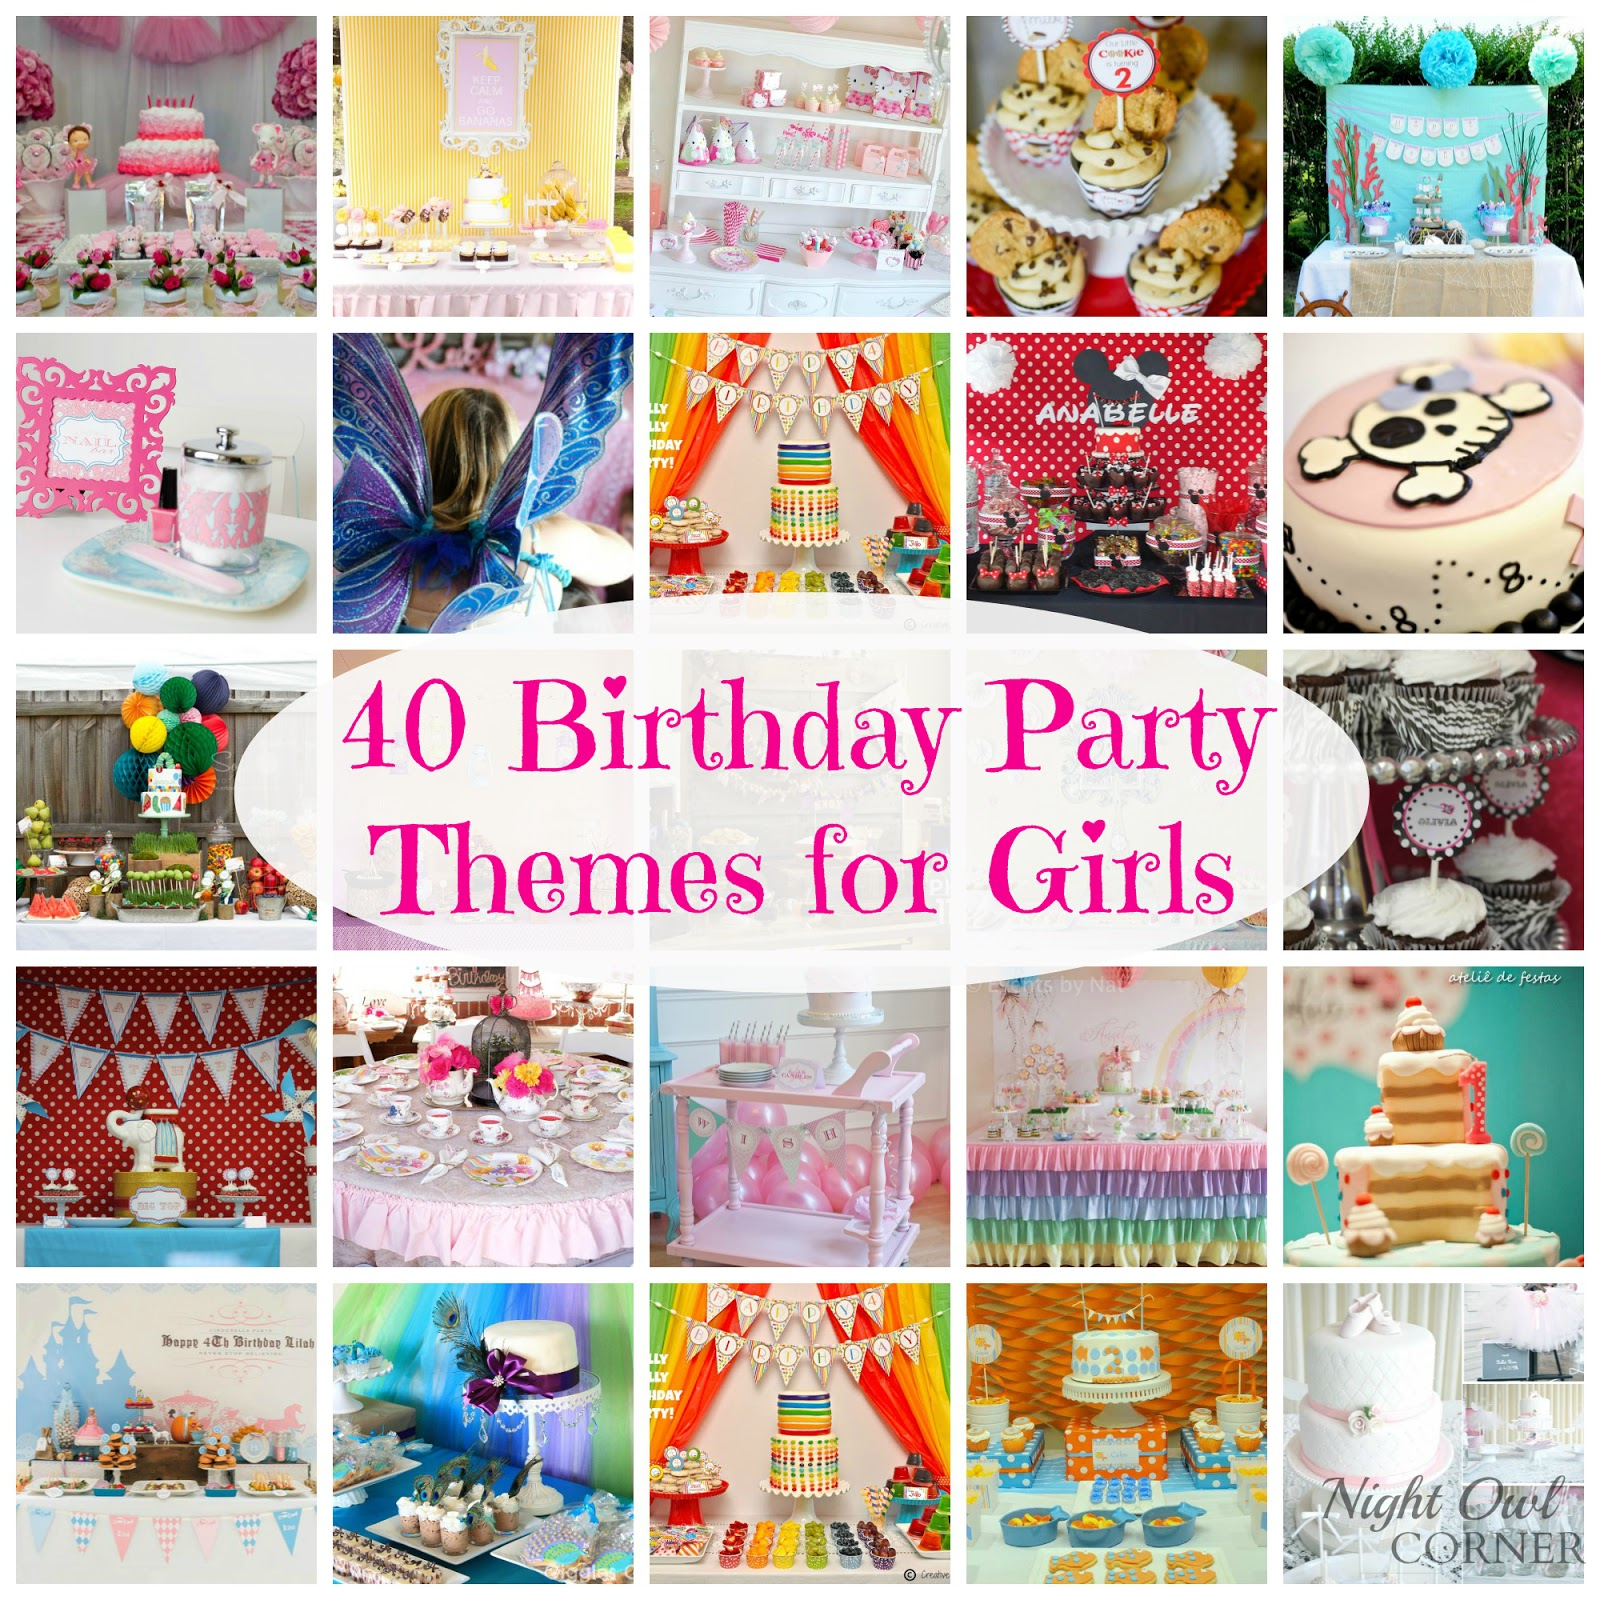 40 Birthday Party Themes for Girls - Night Owl Corner